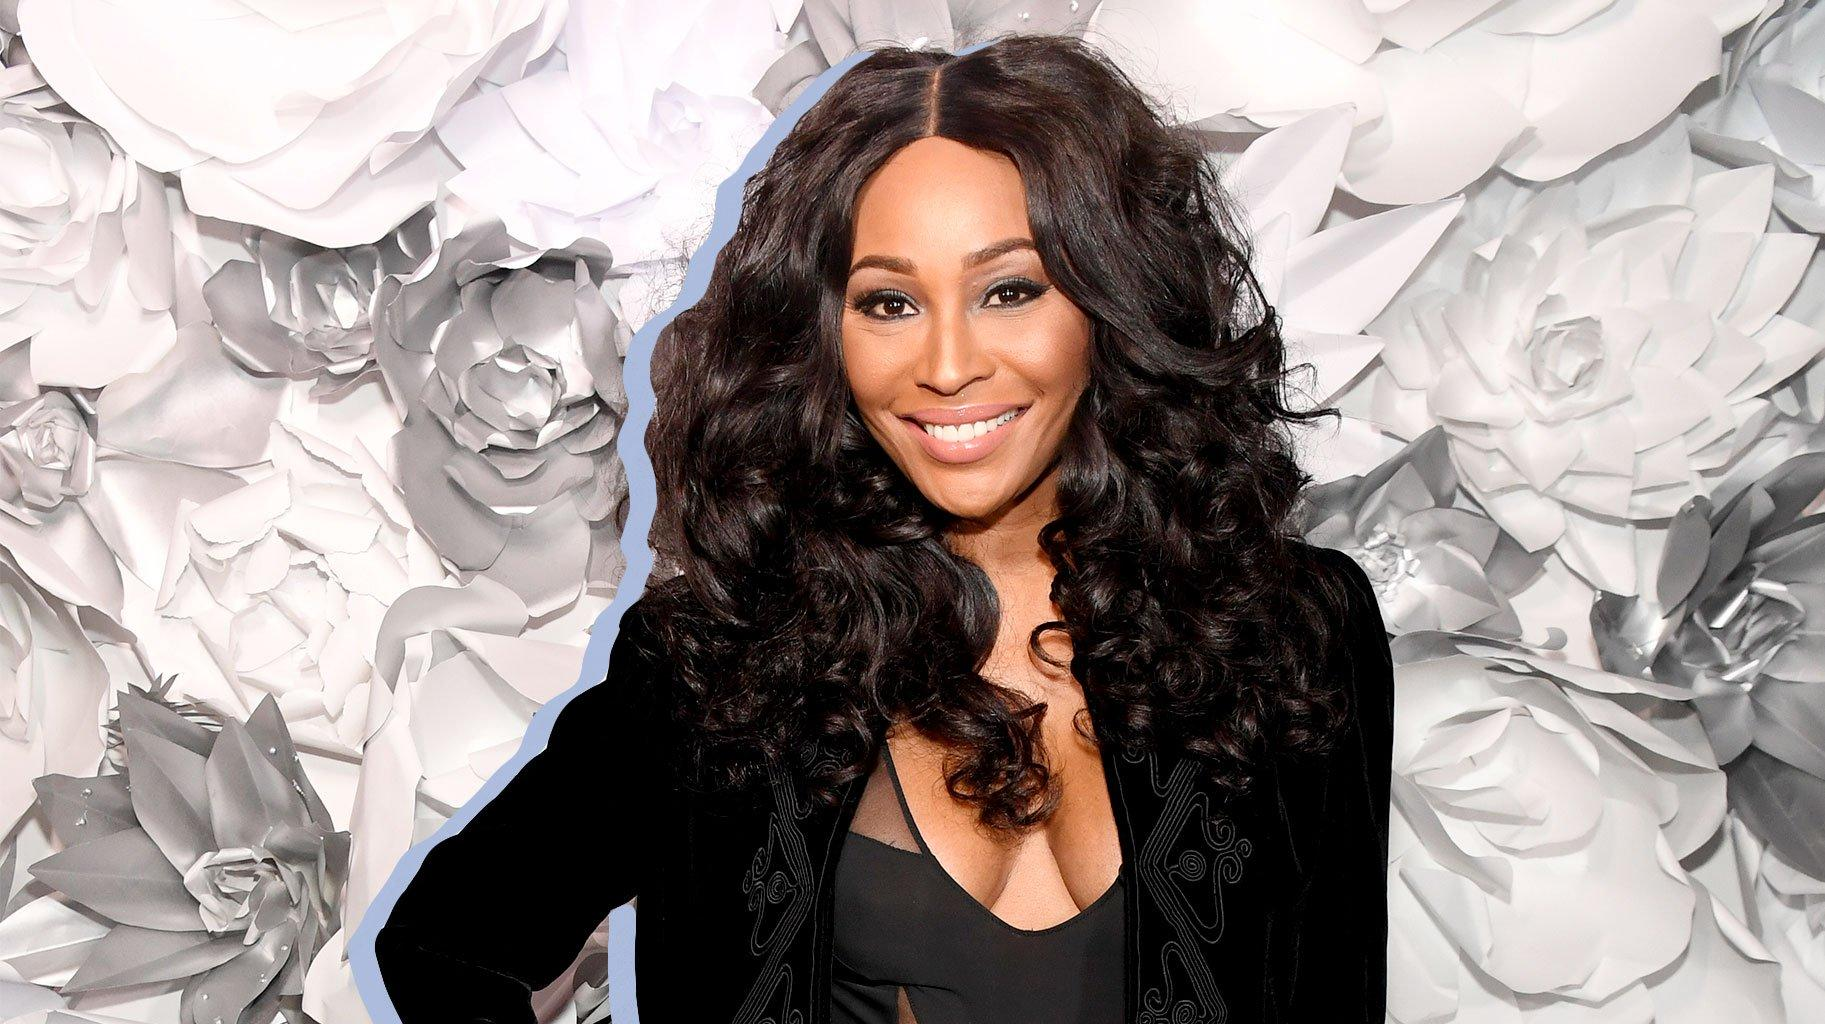 Cynthia Bailey Says She Has To Get Things Back On Track With Her Body After The Quarantine